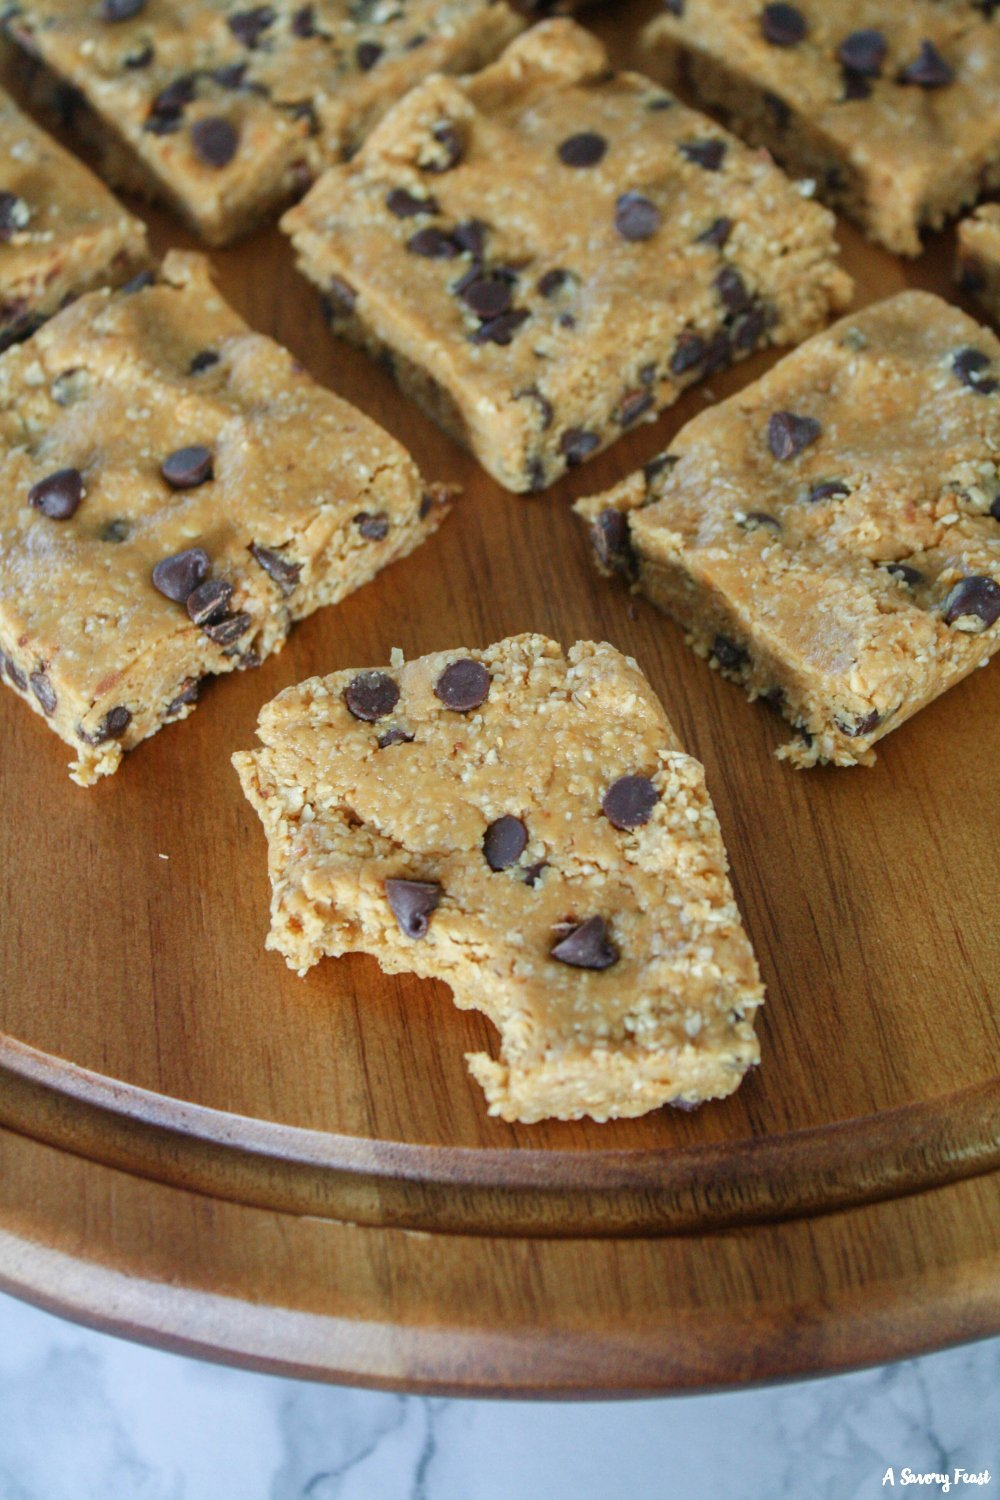 Mix up some Healthier Chocolate Chip Cookie Bars in minutes!